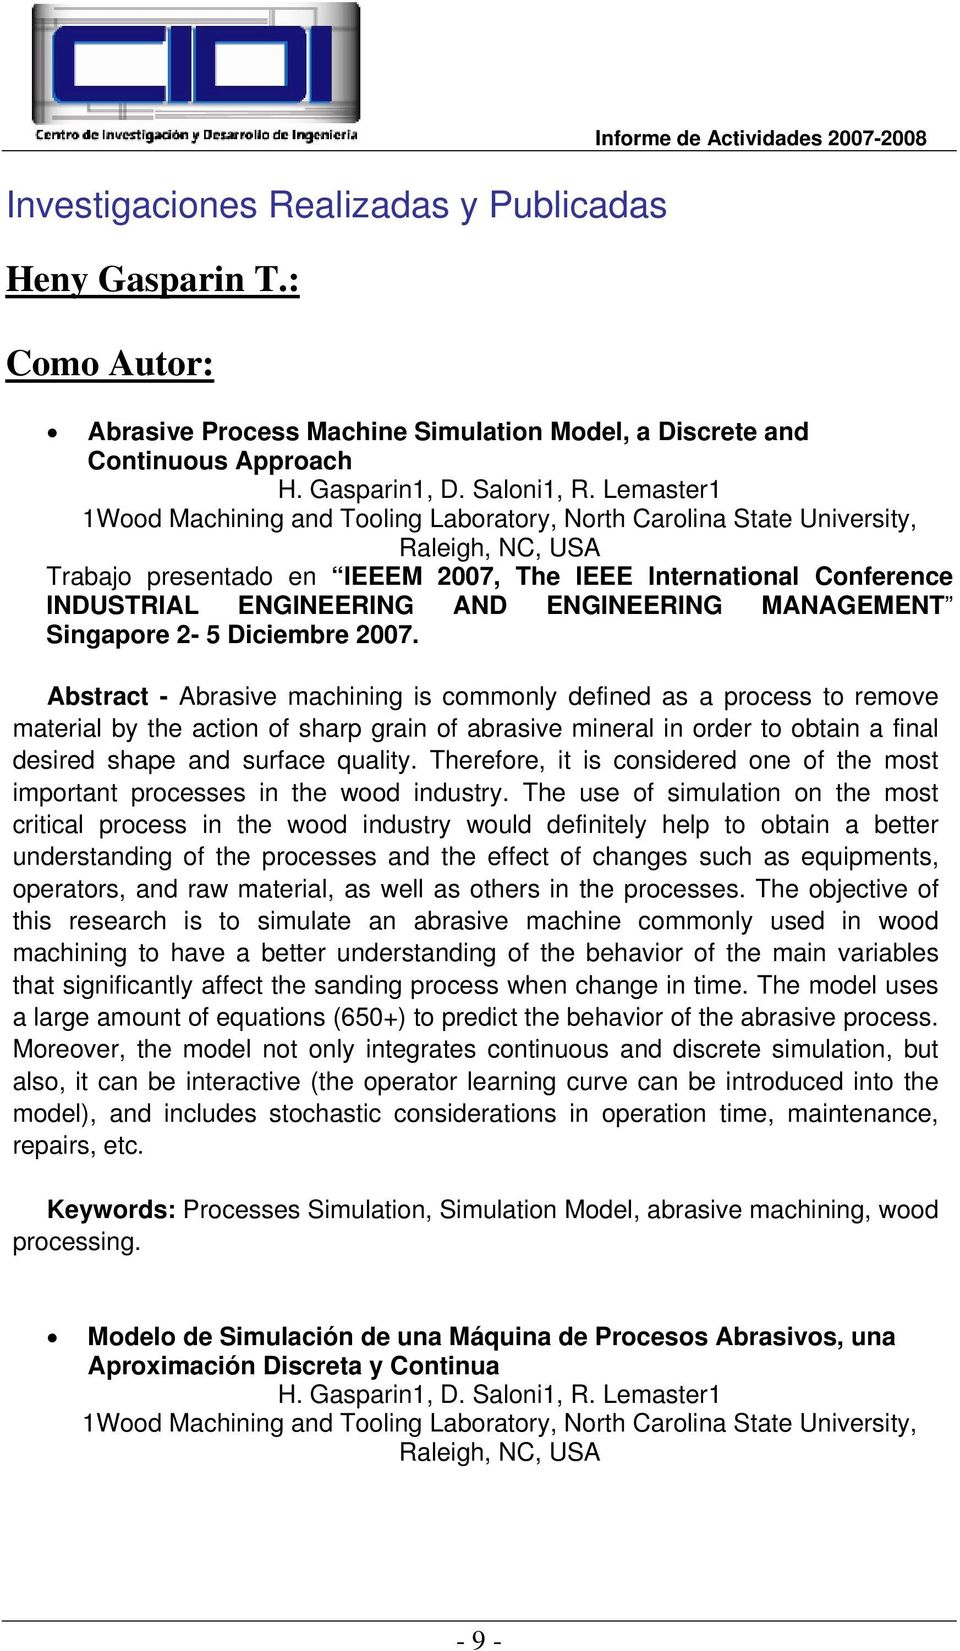 Lemaster1 1Wood Machining and Tooling Laboratory, North Carolina State University, Raleigh, NC, USA Trabajo presentado en IEEEM 2007, The IEEE International Conference INDUSTRIAL ENGINEERING AND